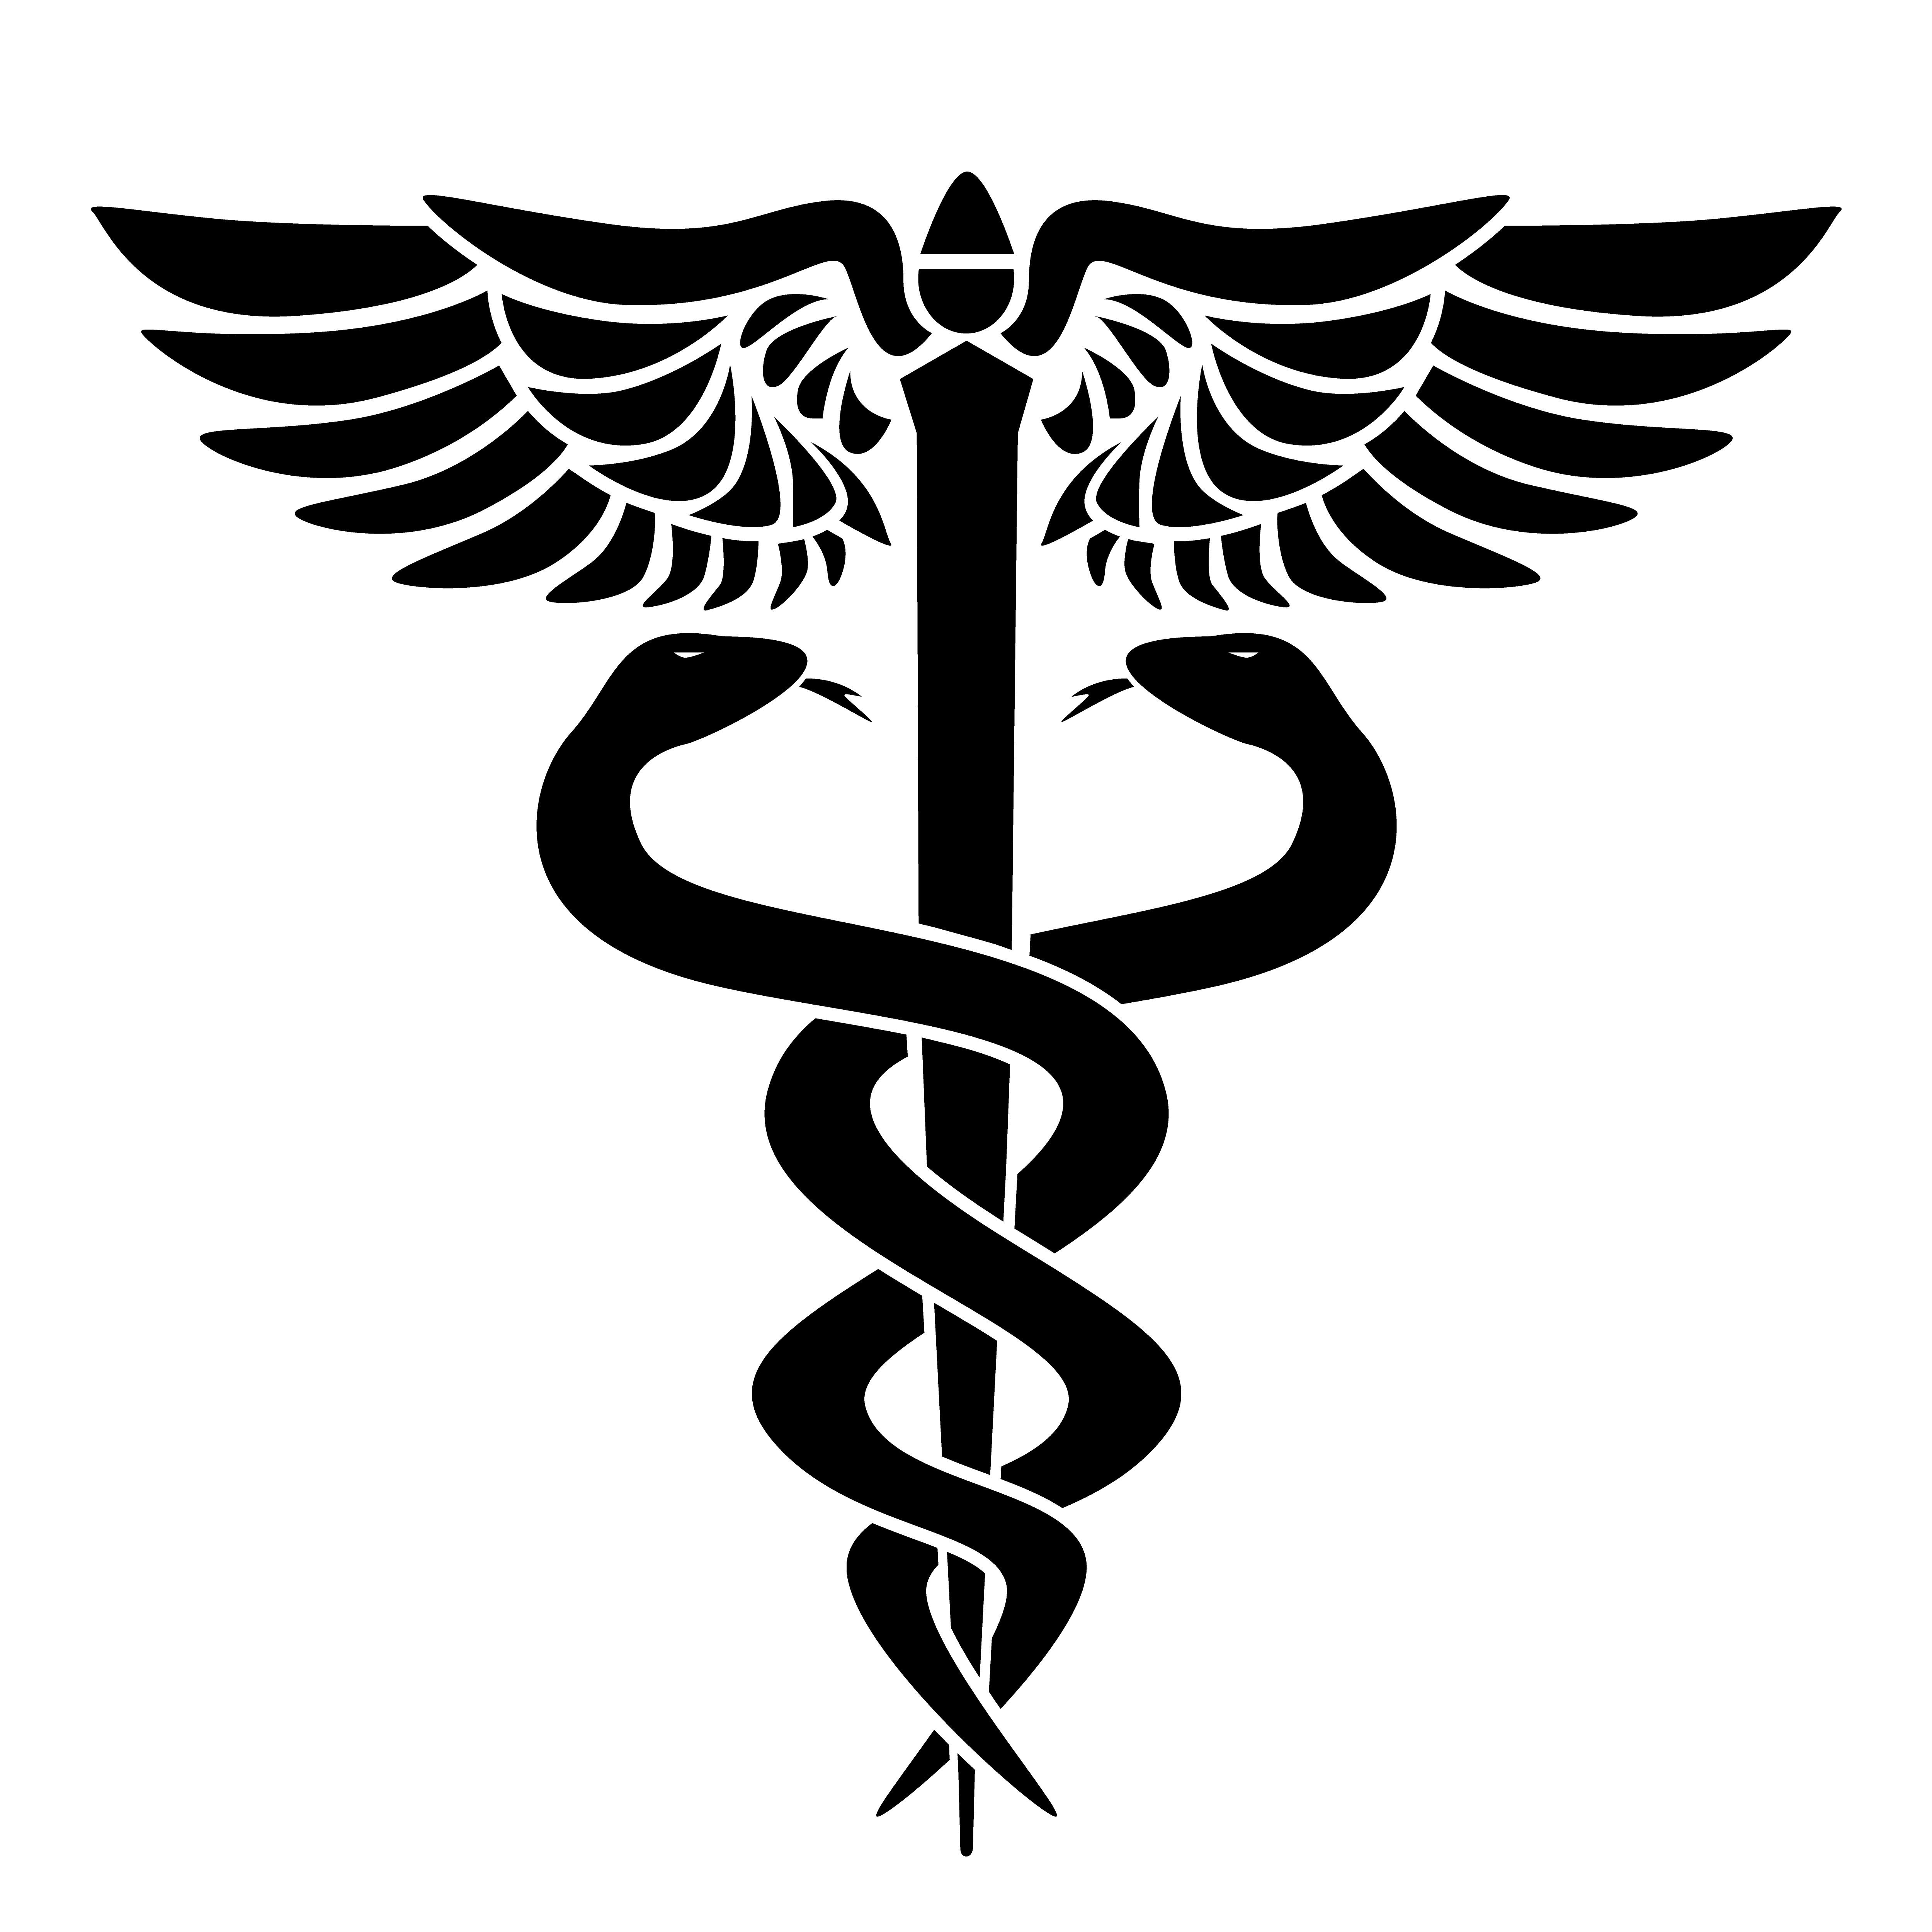 Caduceus Medical Symbol With Two Snakes Staff And Wings